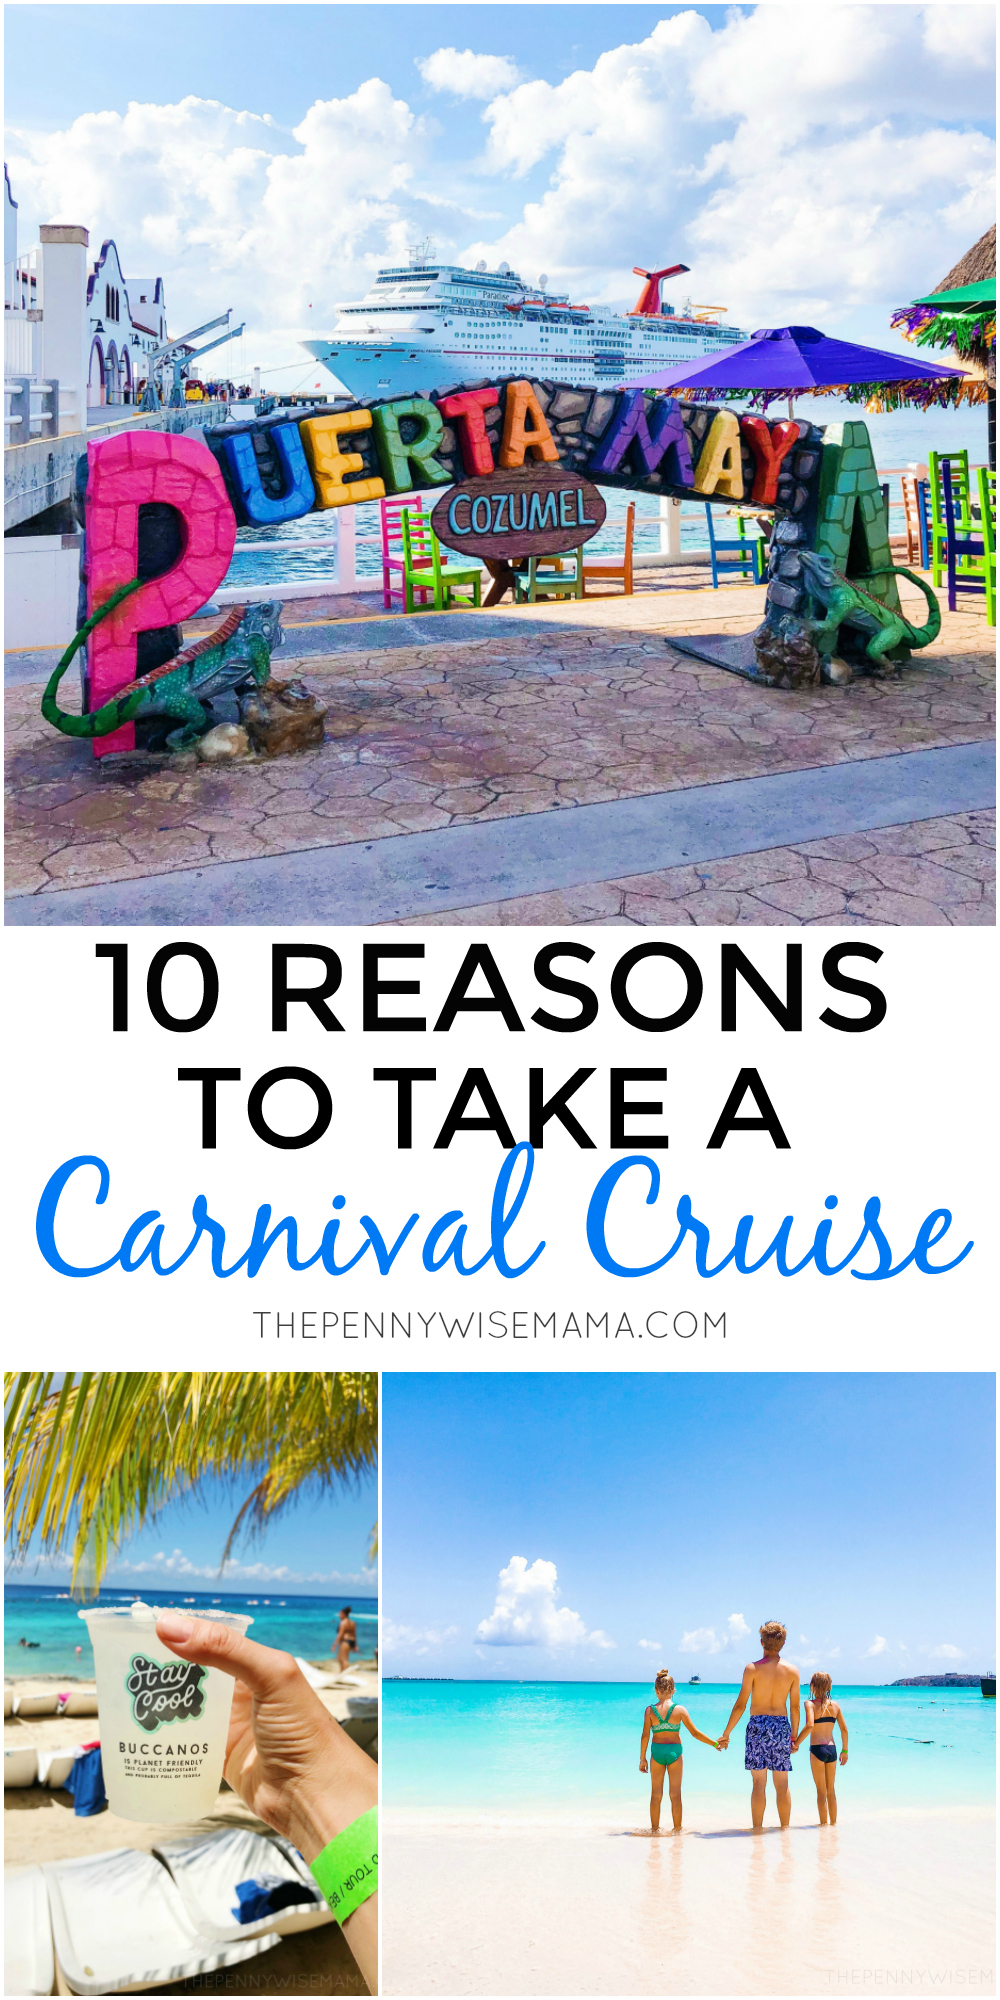 Thinking about taking a Carnival Cruise? Check out these top 10 reasons to book a Carnival Cruise for your next vacation!